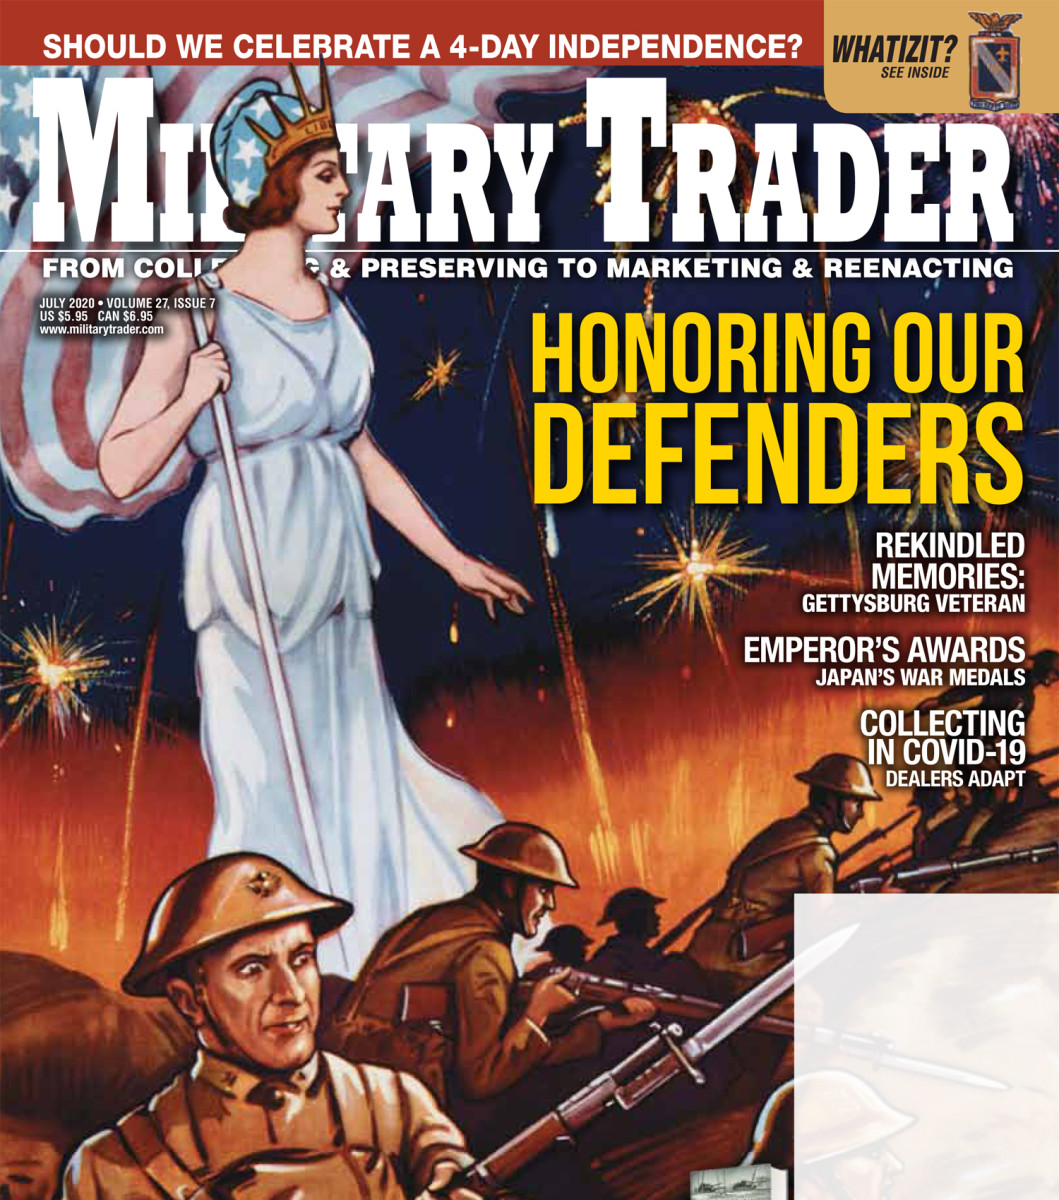 Subscribe to Military Trader